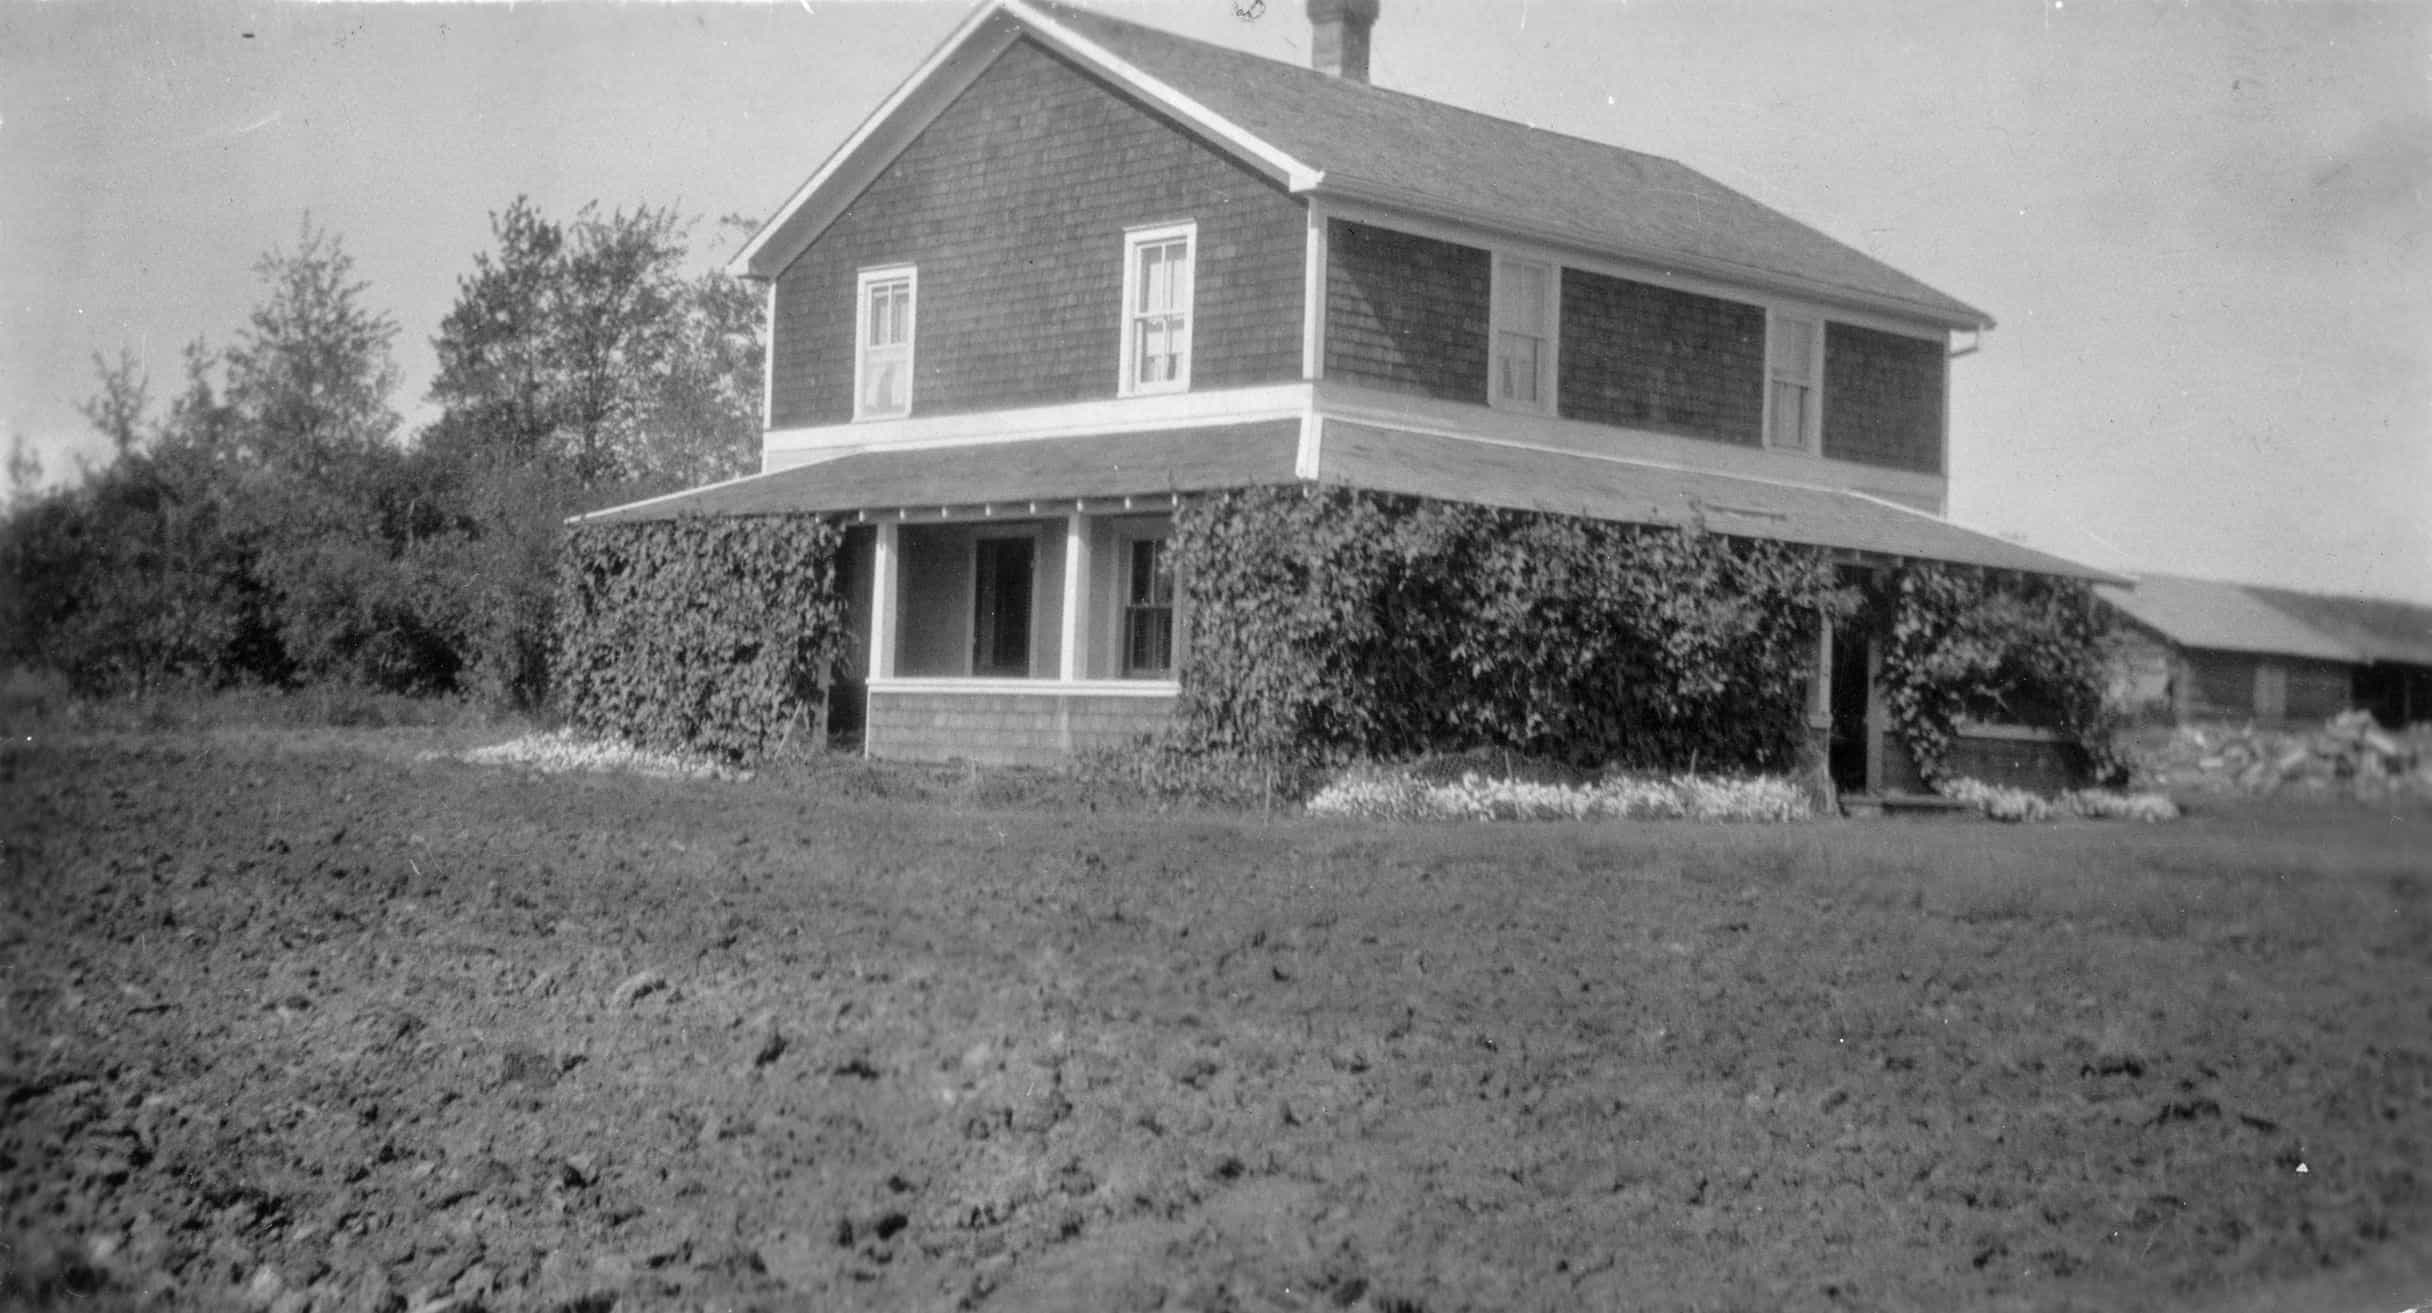 2. Carveth Homestead, c. 1916